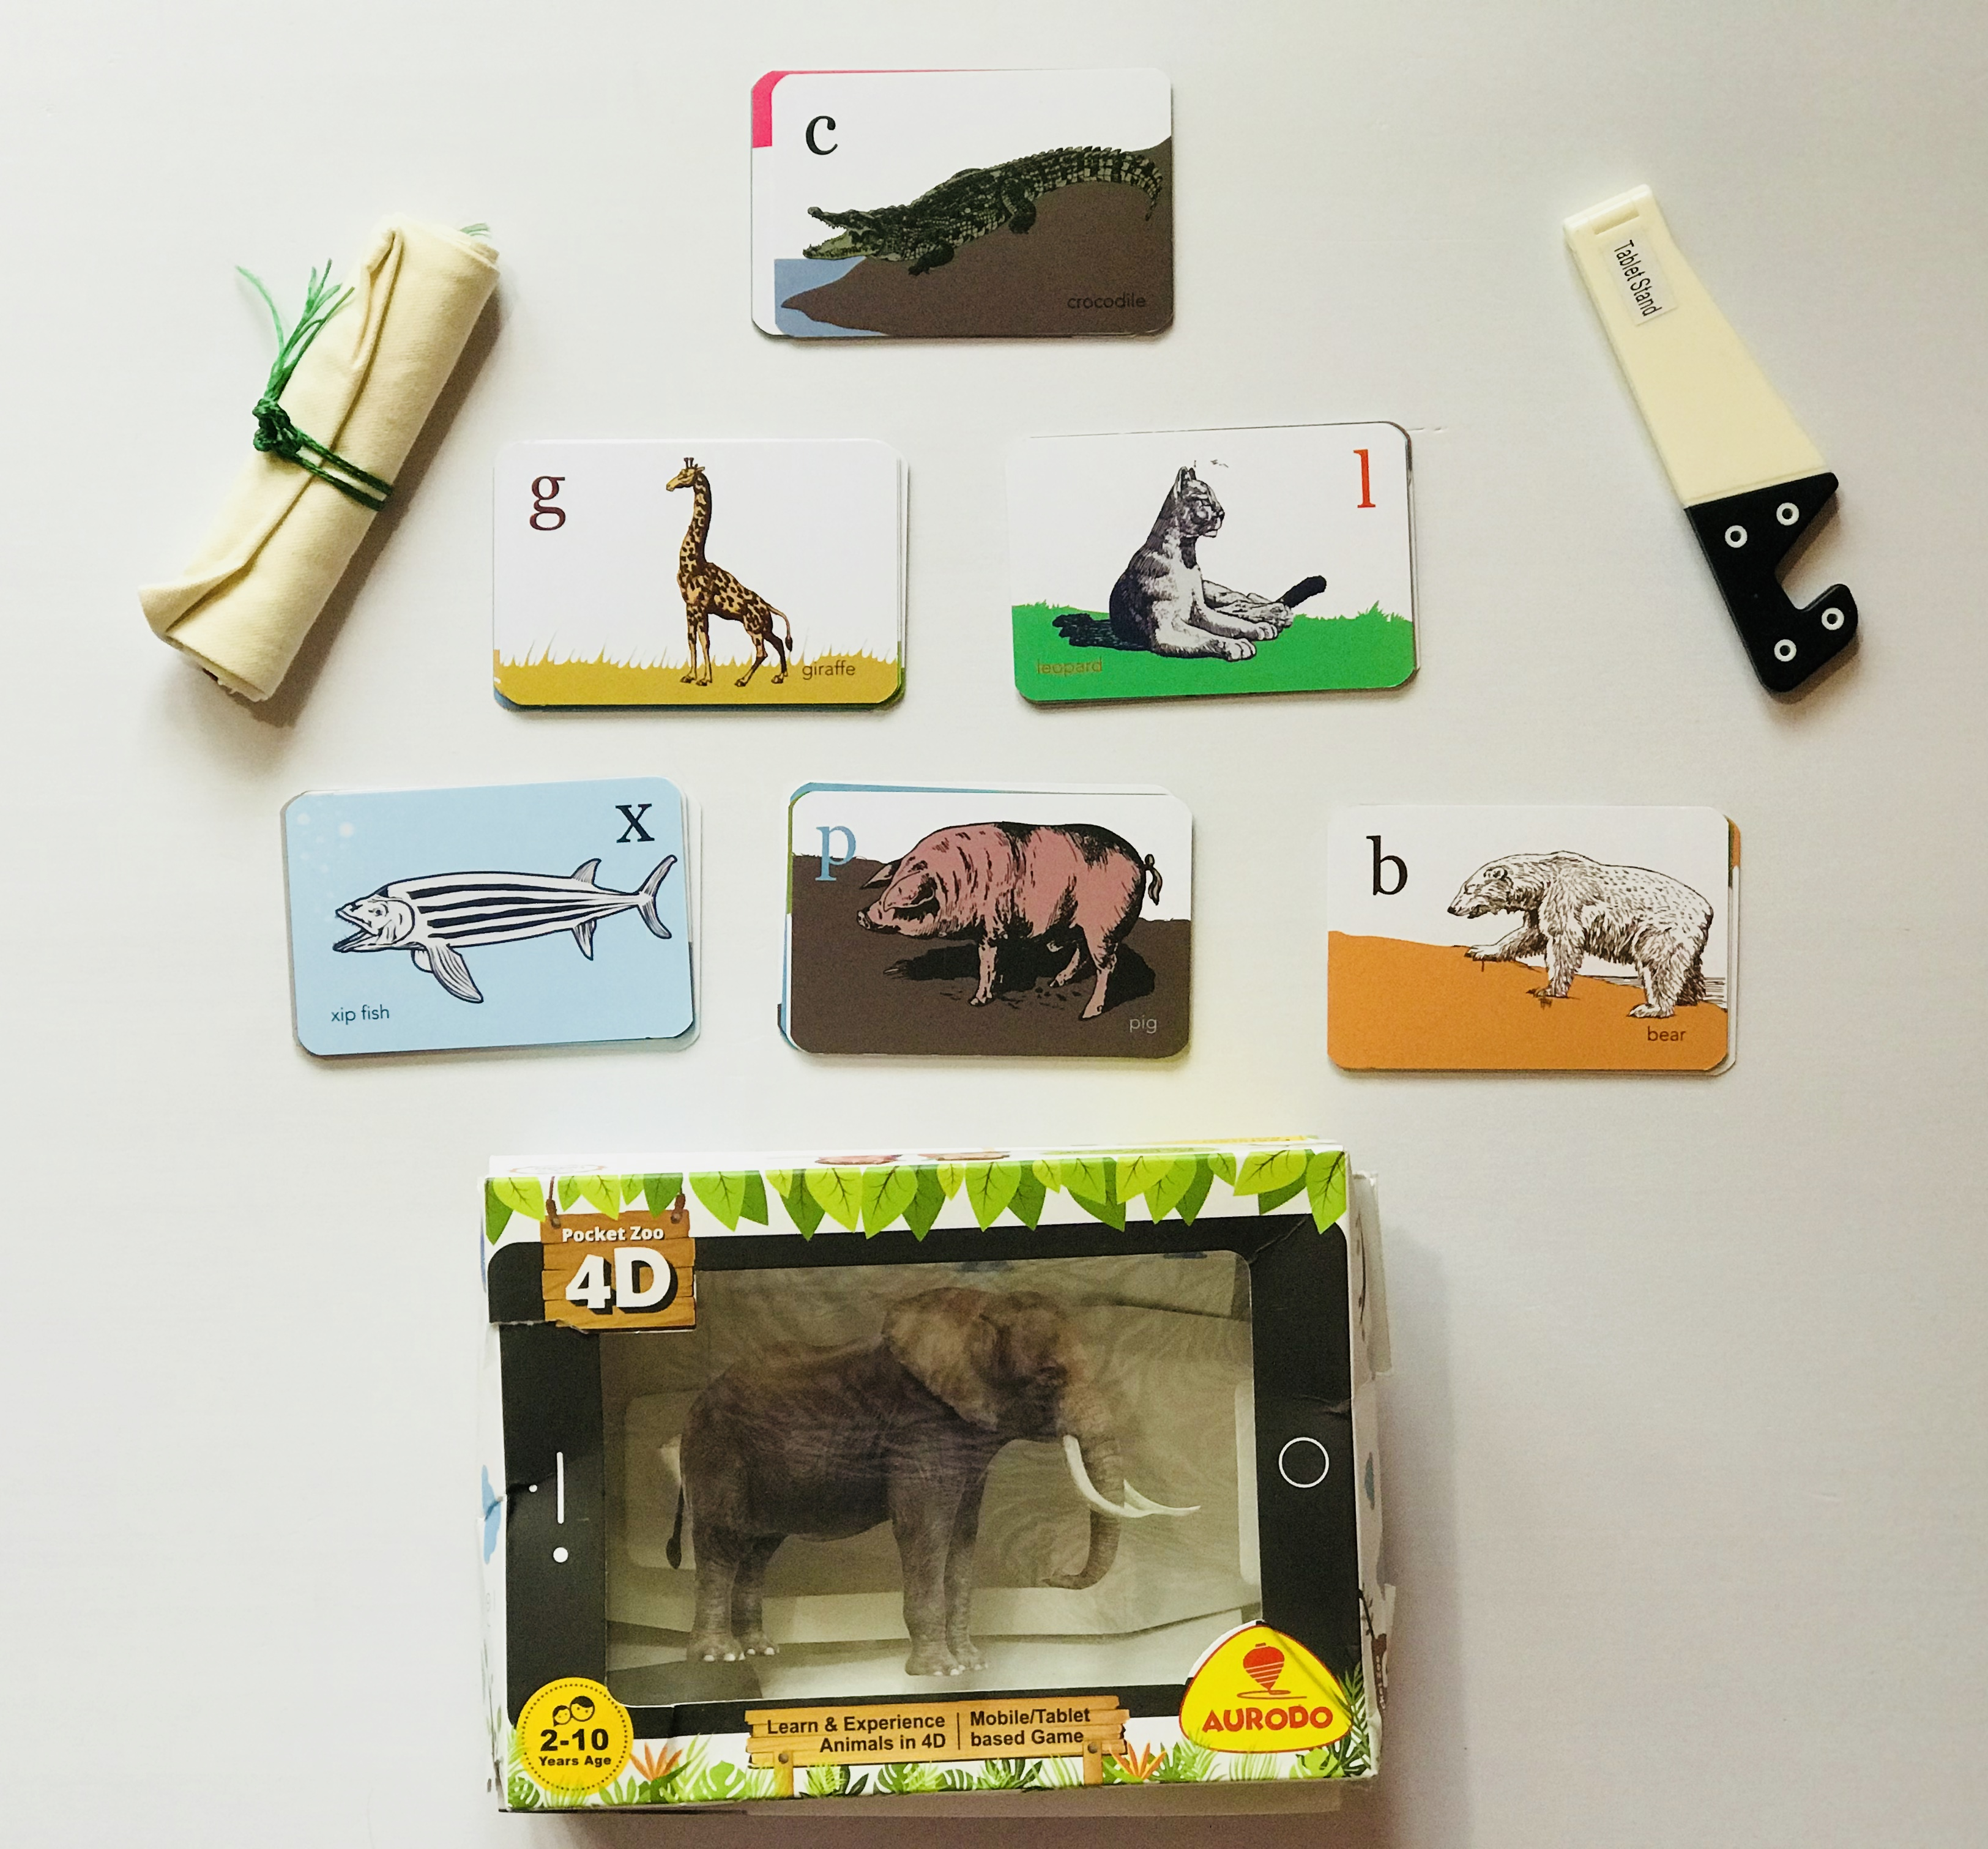 Aurodo Pocket Zoo 4D: Augmented reality game